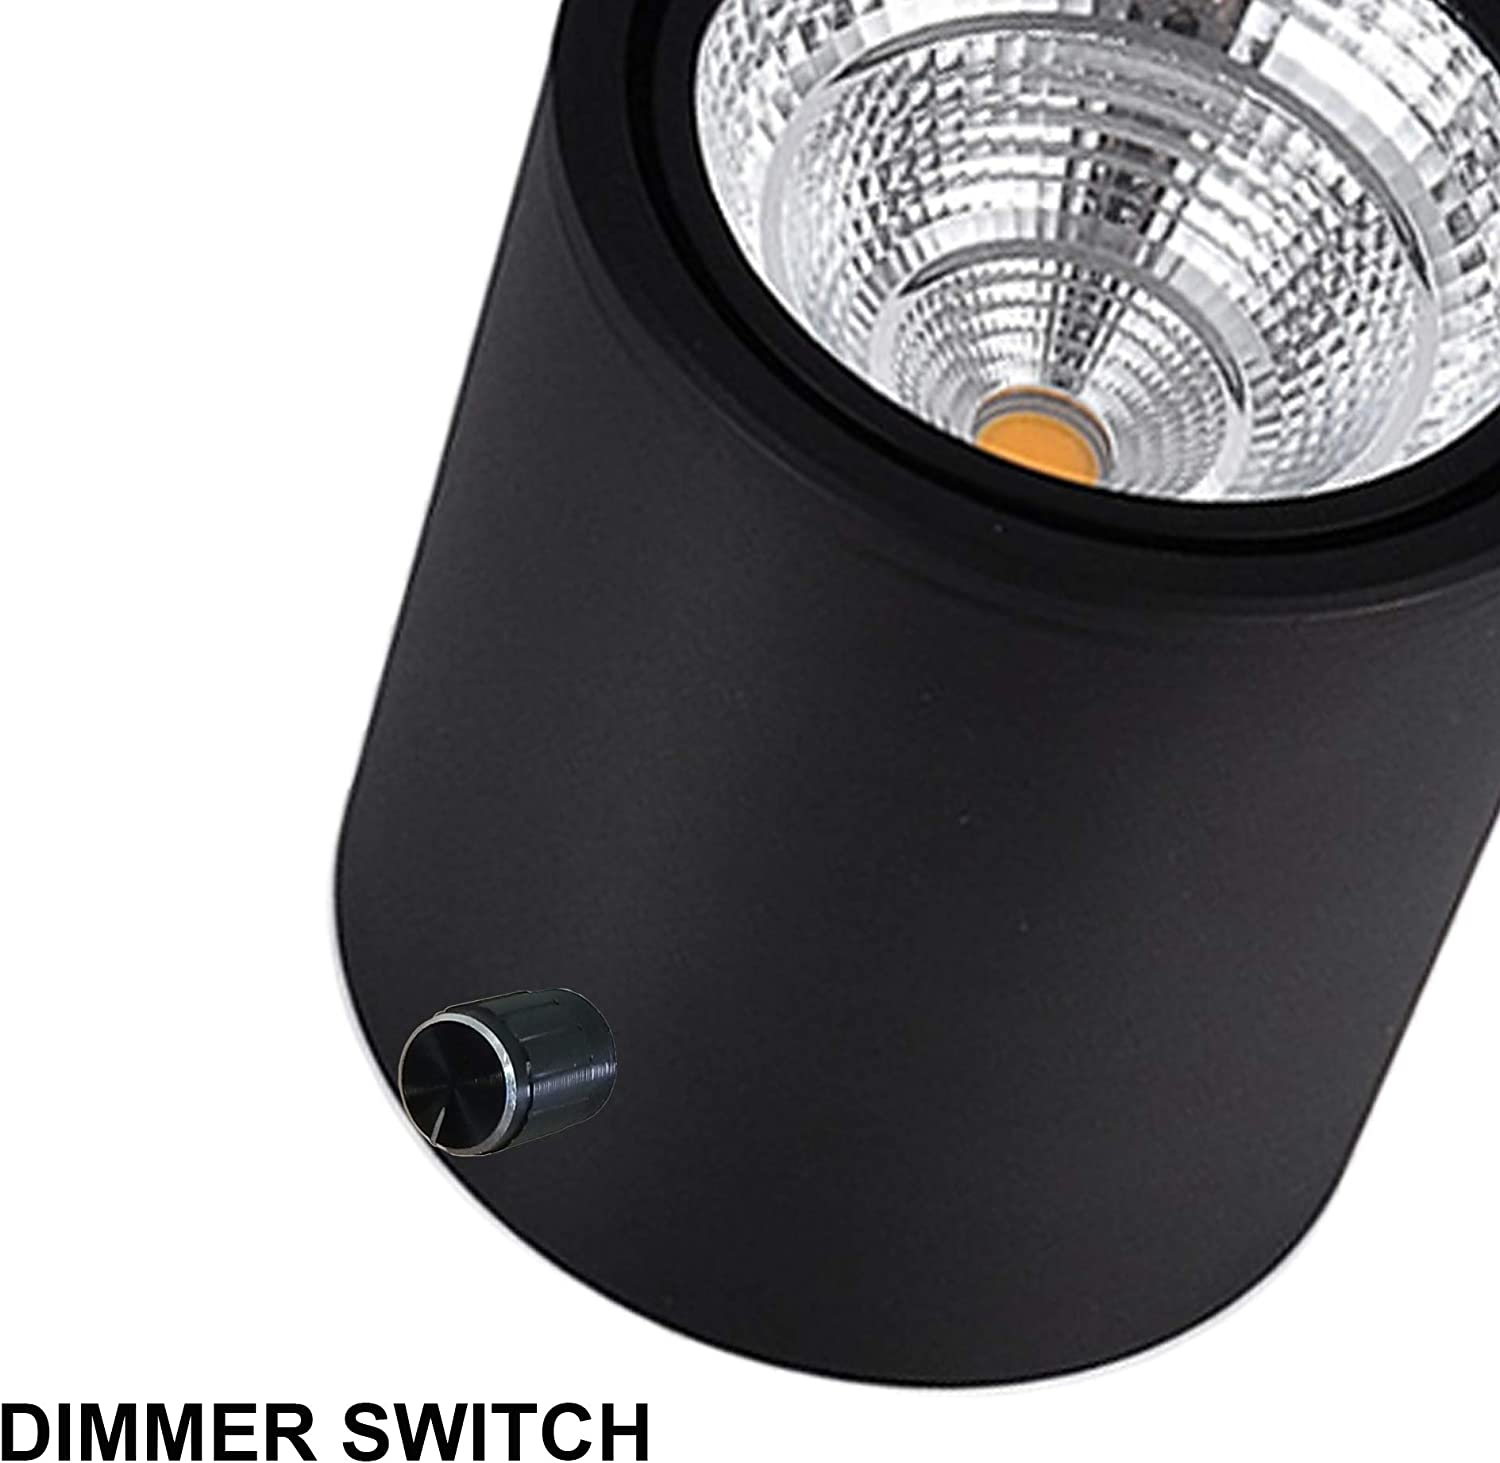 SKIVTGLAMP Dimmable High Accent Uplight 5W COB LED Barrel Type Spotlight Light with 5.9ft On//Off Dimmer Switch Cord Plug in Extra Light Rotating Decorative Light for Stage Background,Black